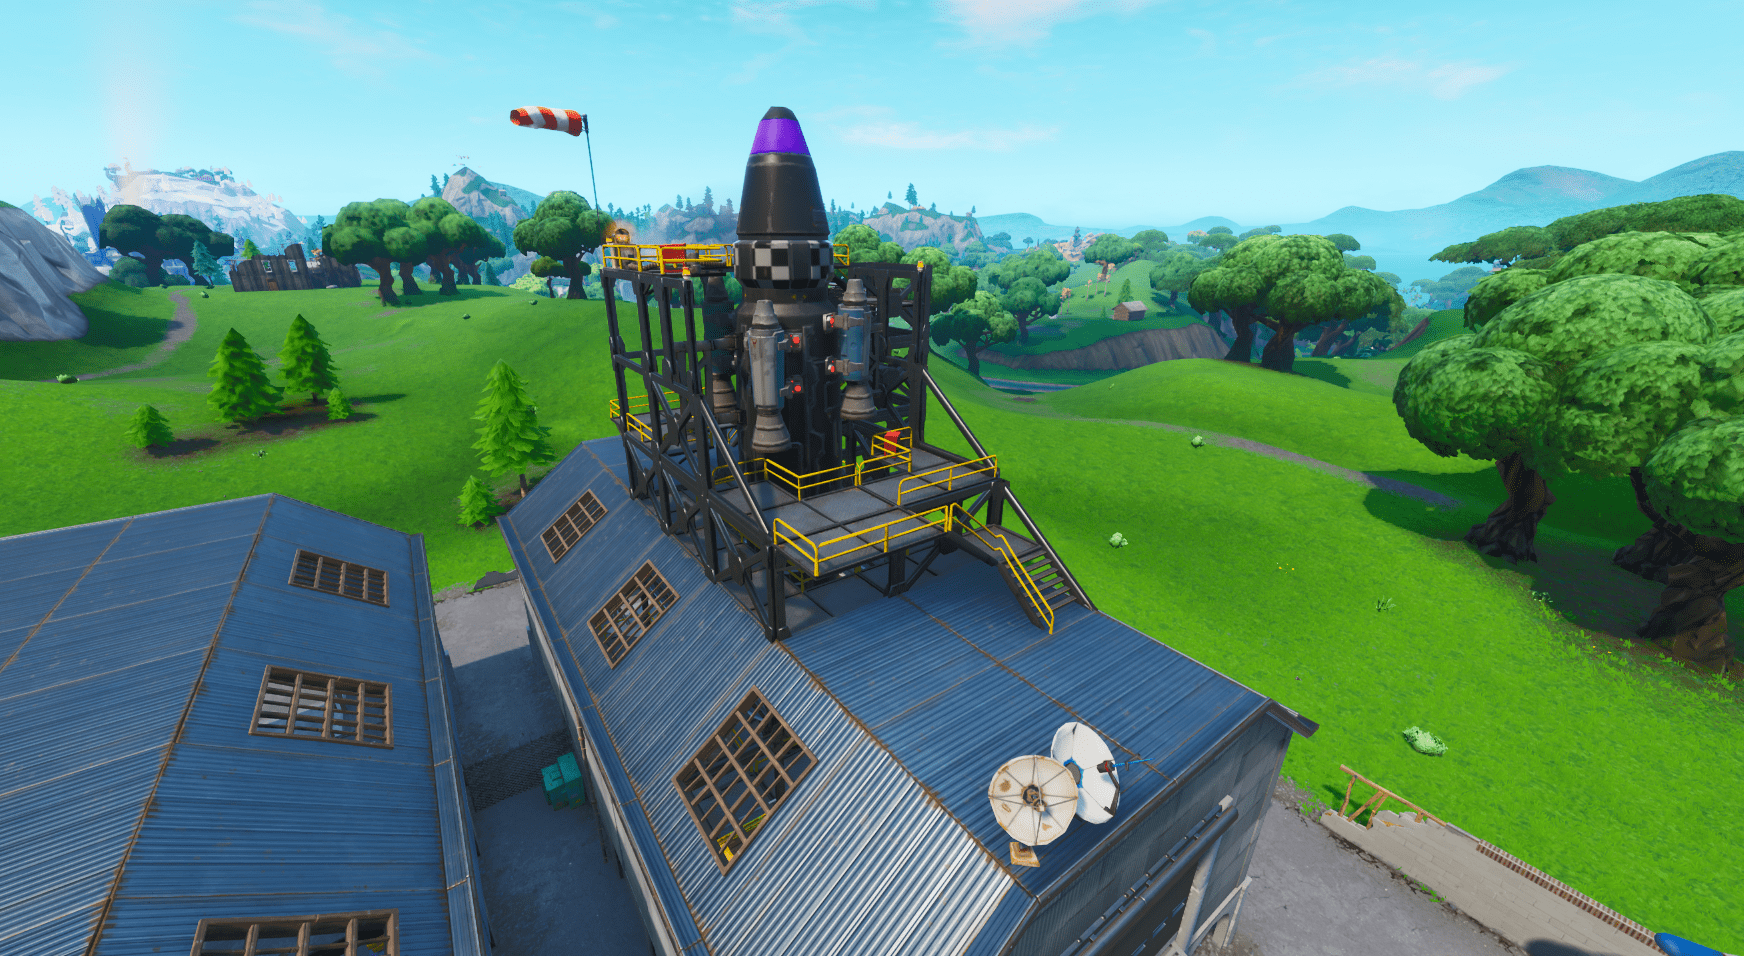 Fortnite v10.40 Map Changes - Dusty Depot Rocket Finished